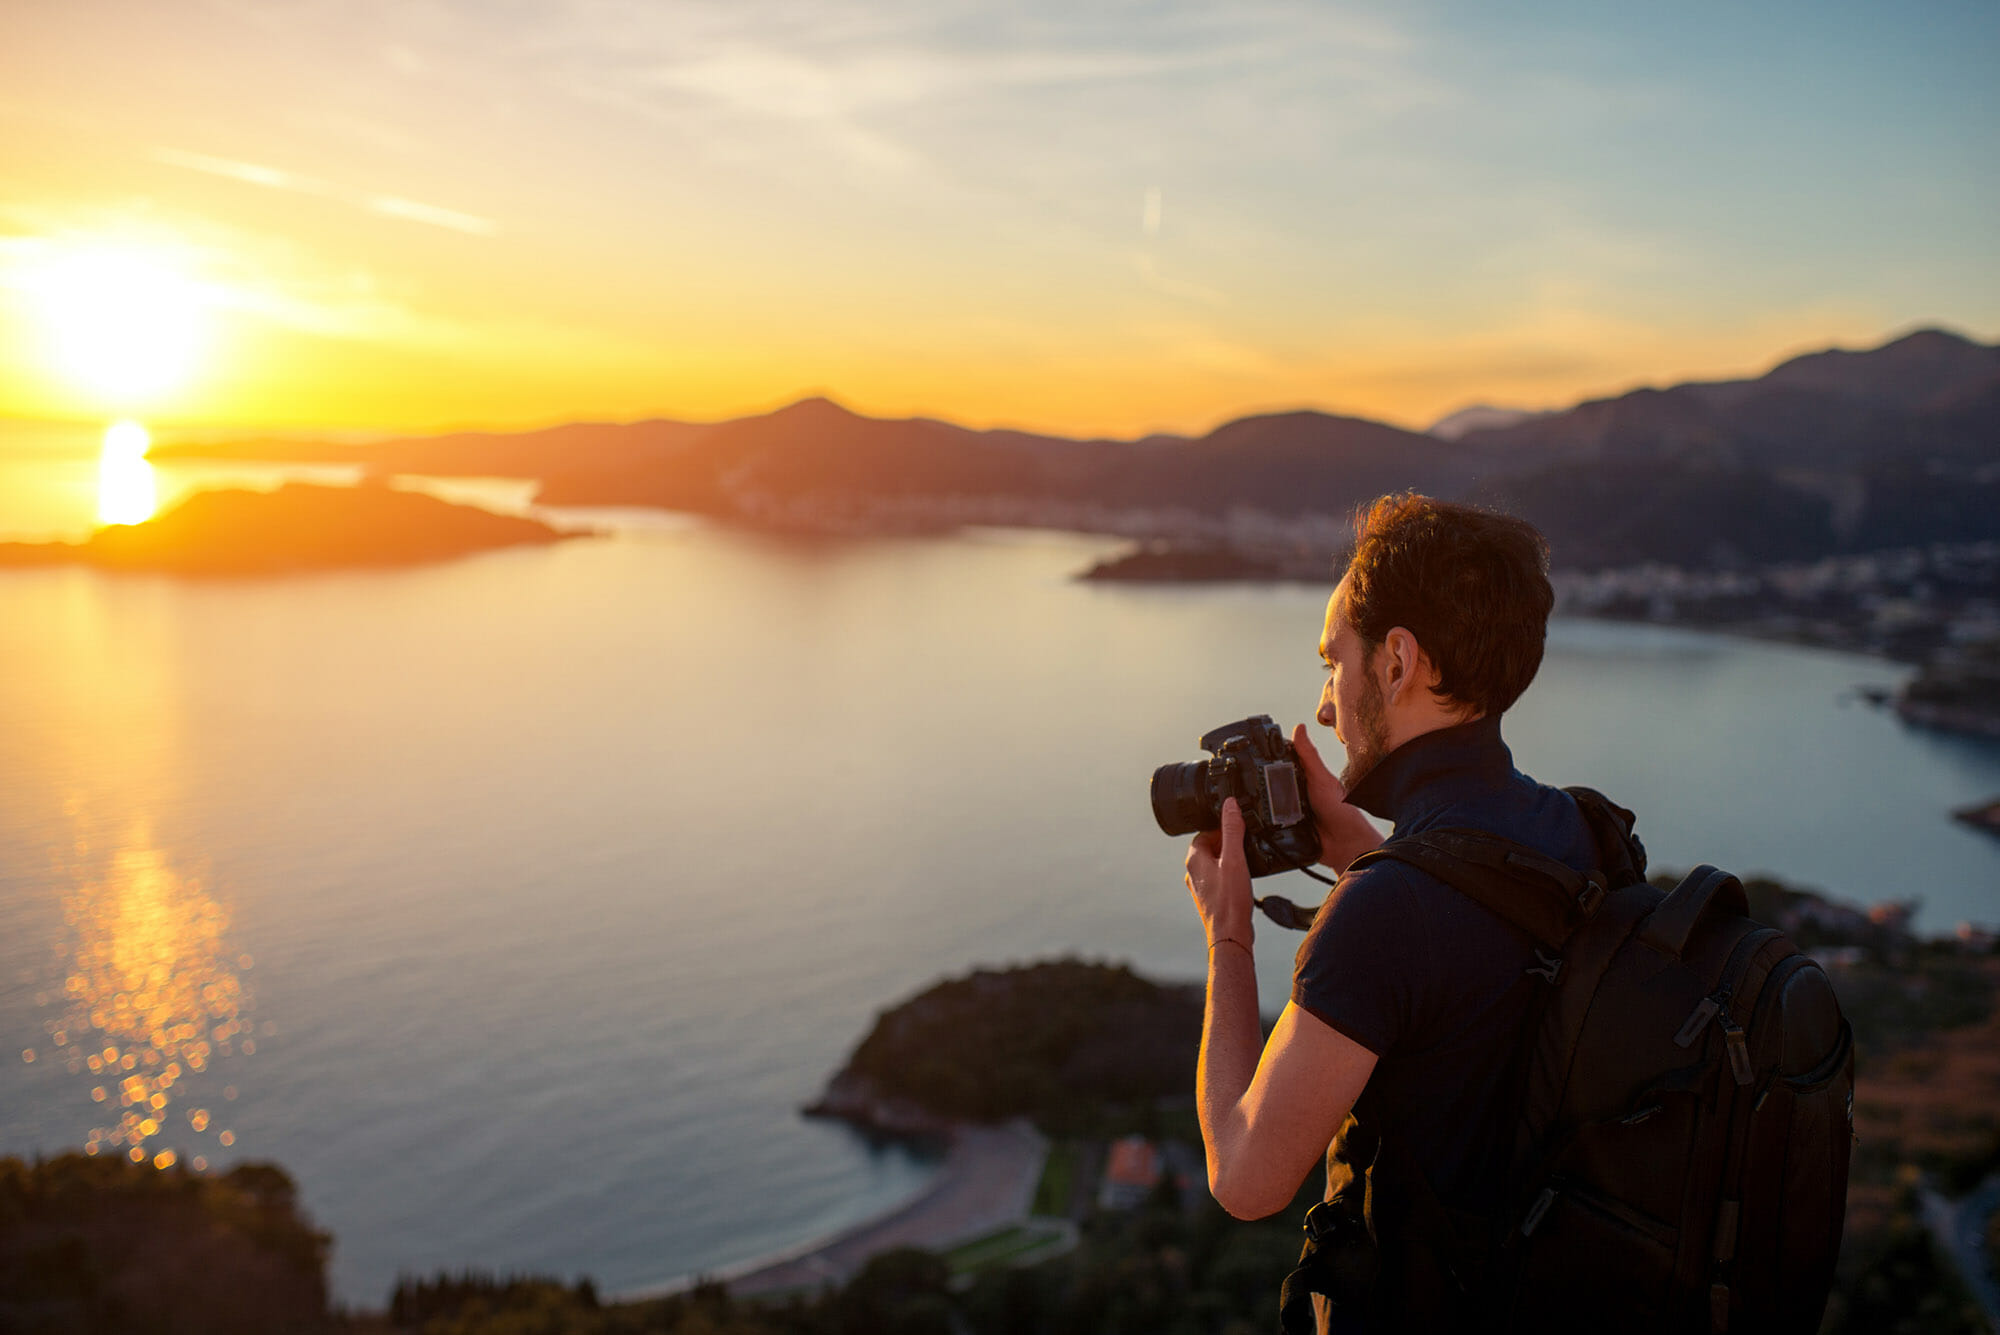 man camera cliff top sunset polo shirt wind taking photographs of landscape